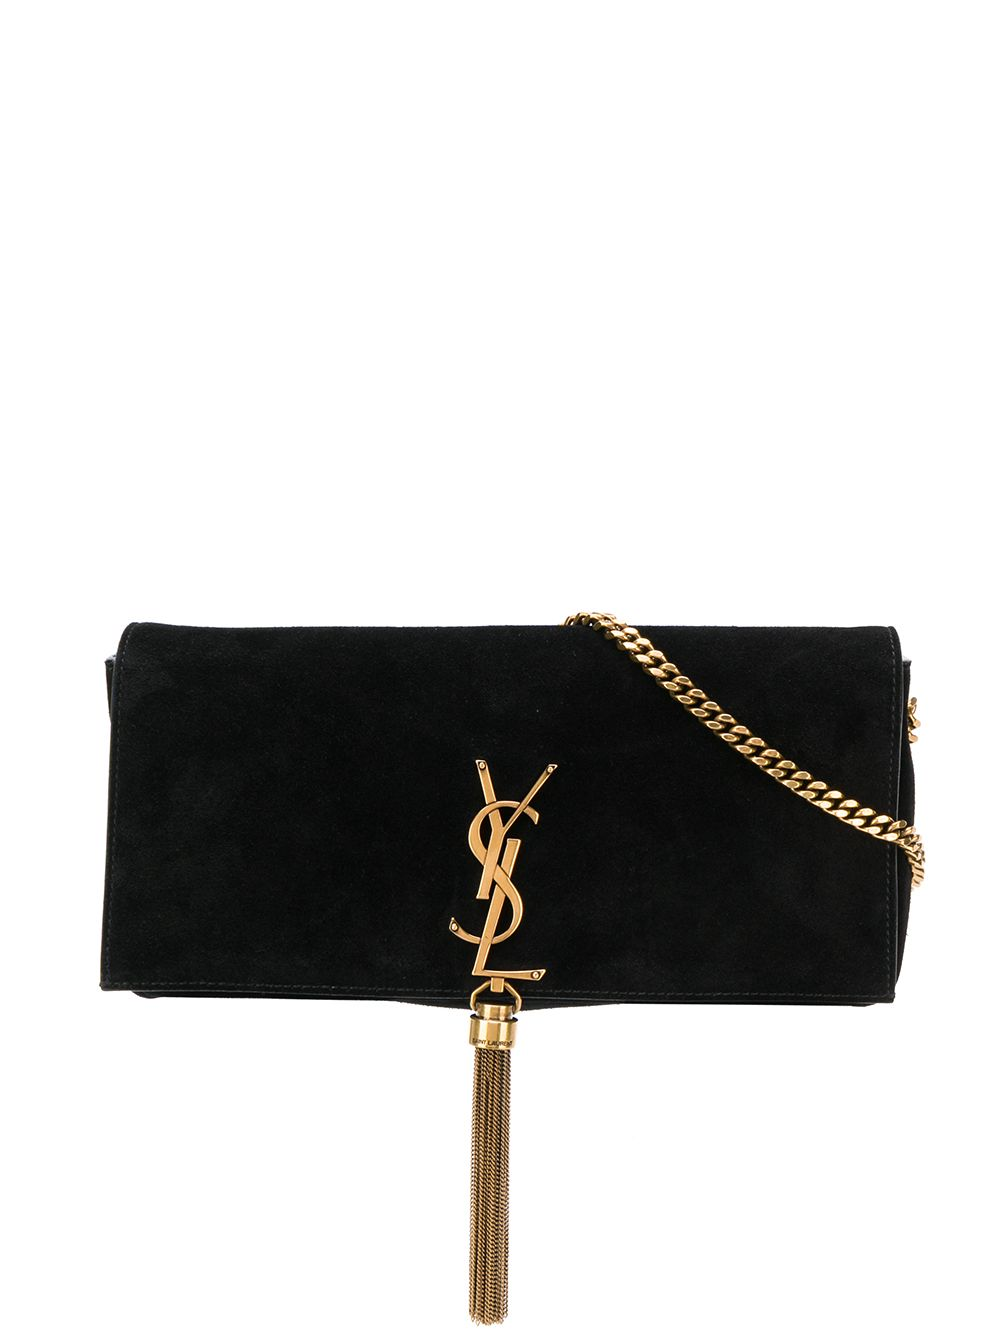 Medium Kate Shoulder Bag